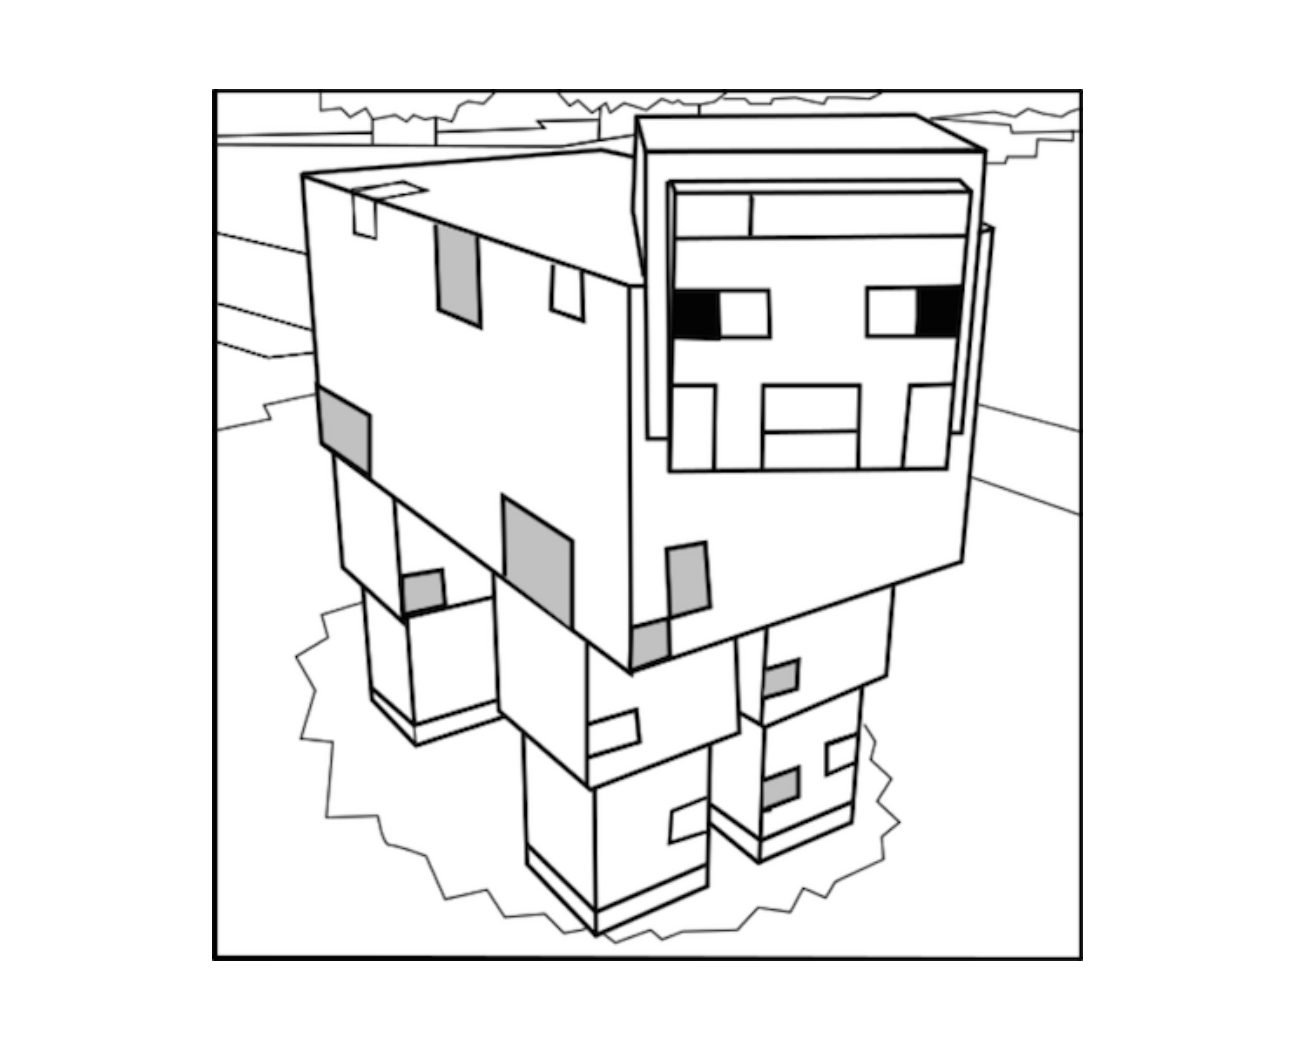 Minecraft Pig Drawing at GetDrawings.com | Free for ...